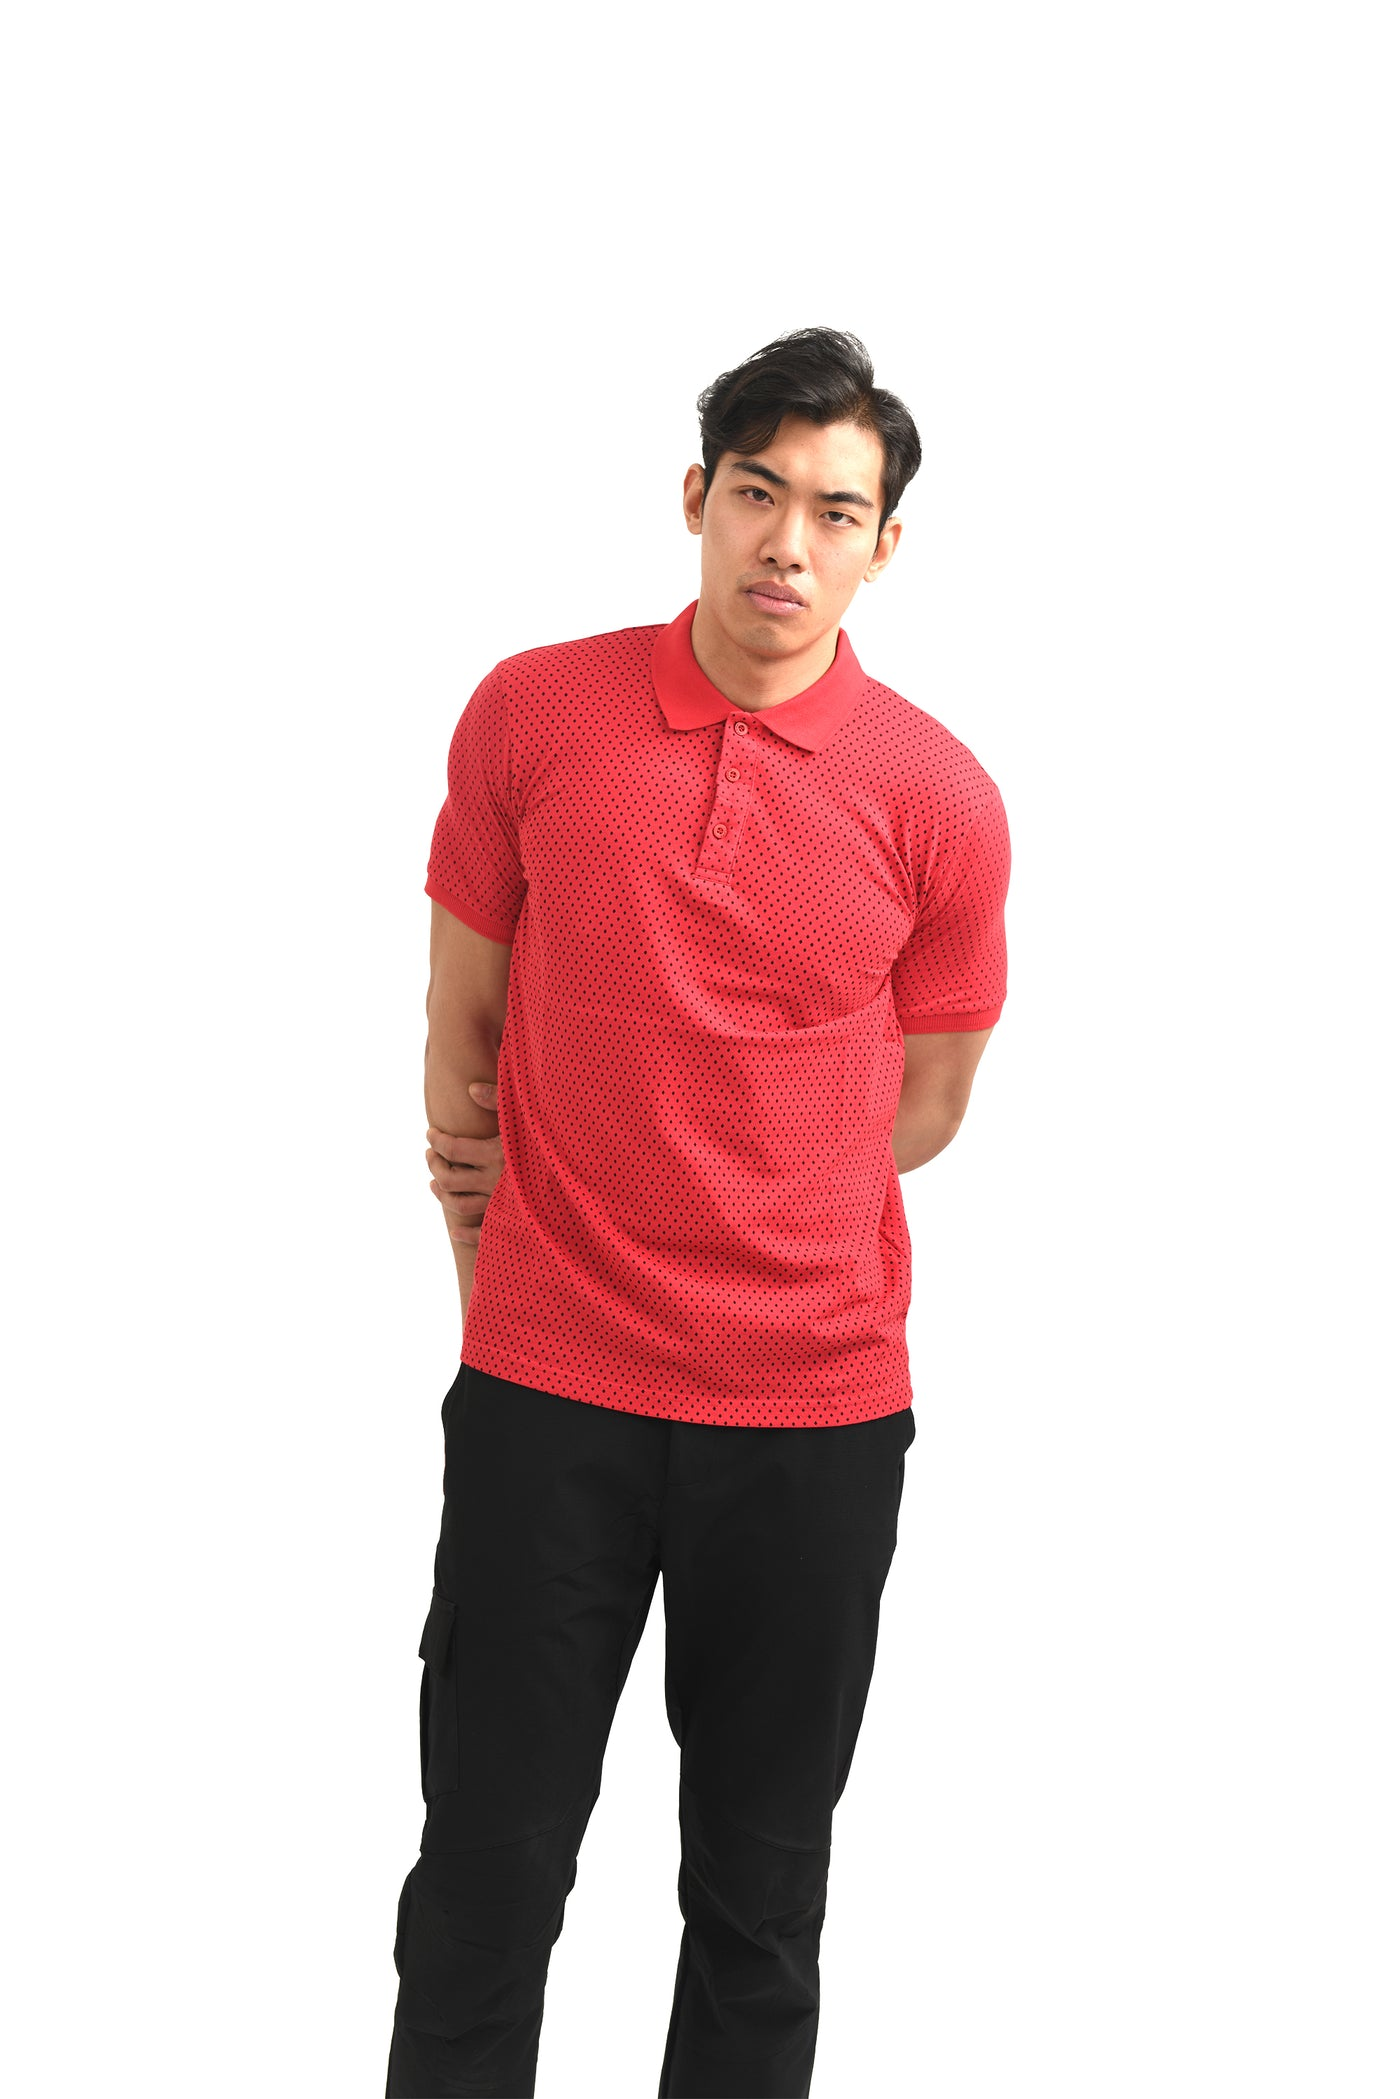 Batyr in Red